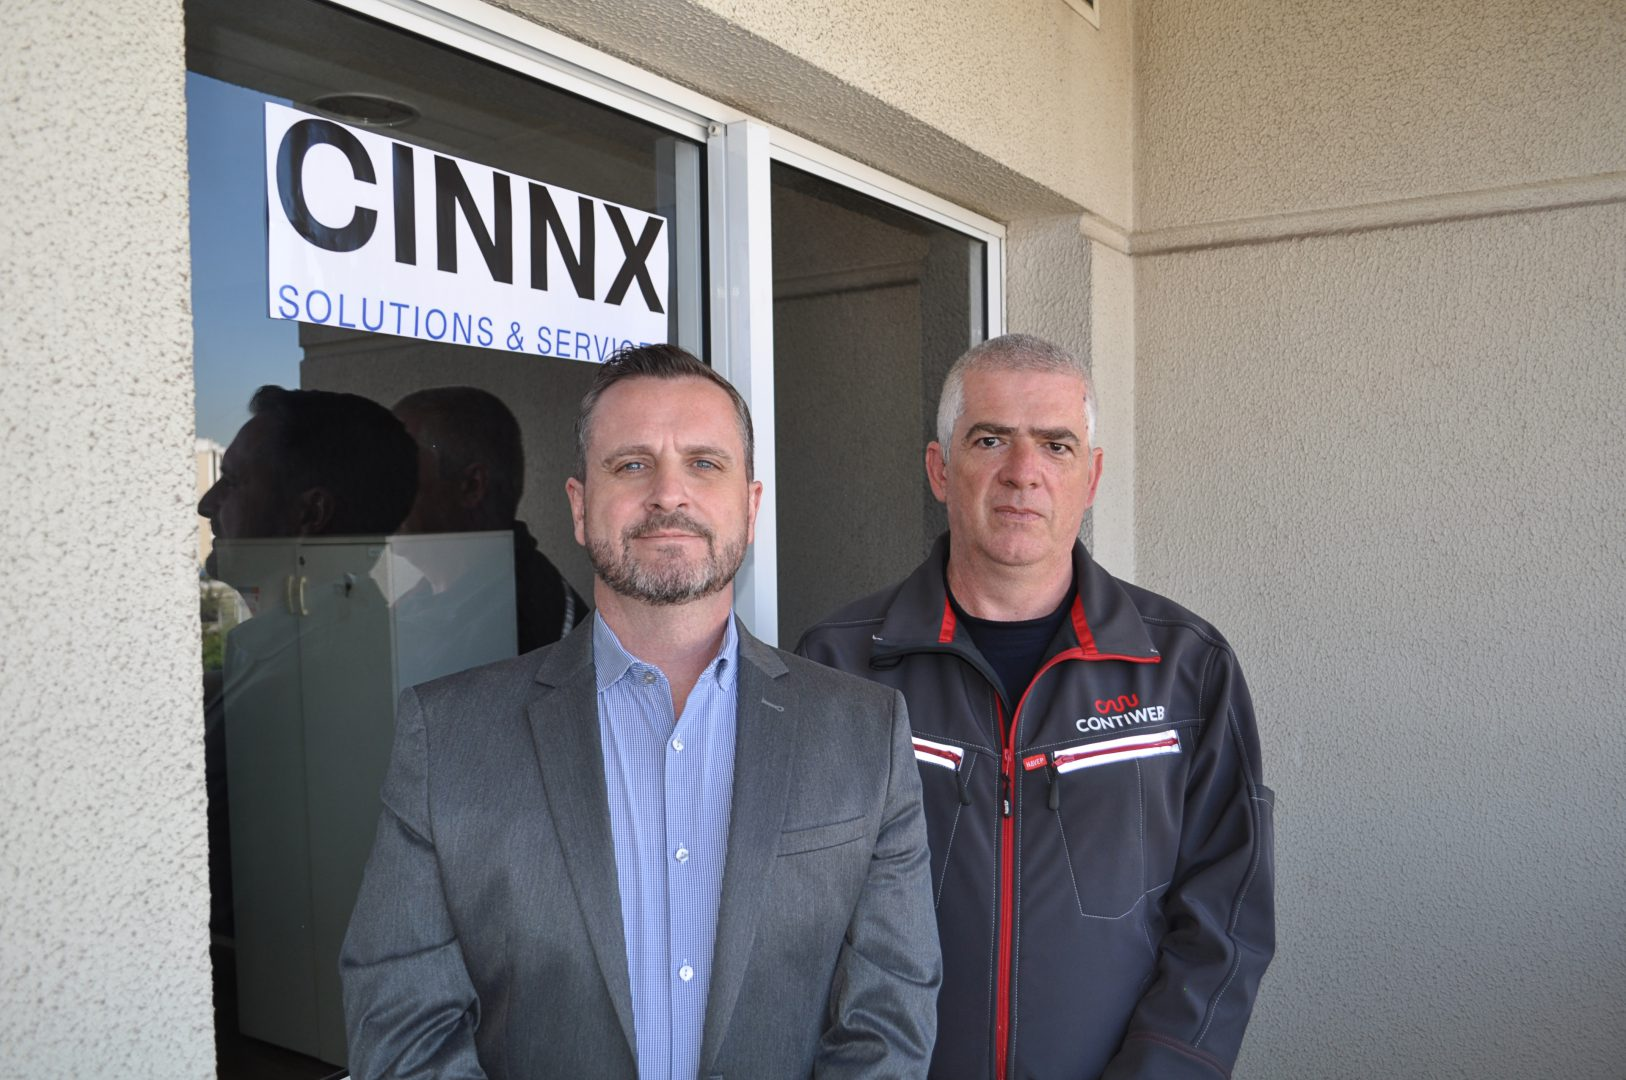 Contiweb today announces that it has appointed CINNX, a supplier of print enhancements, and services, as its South American sales partner.